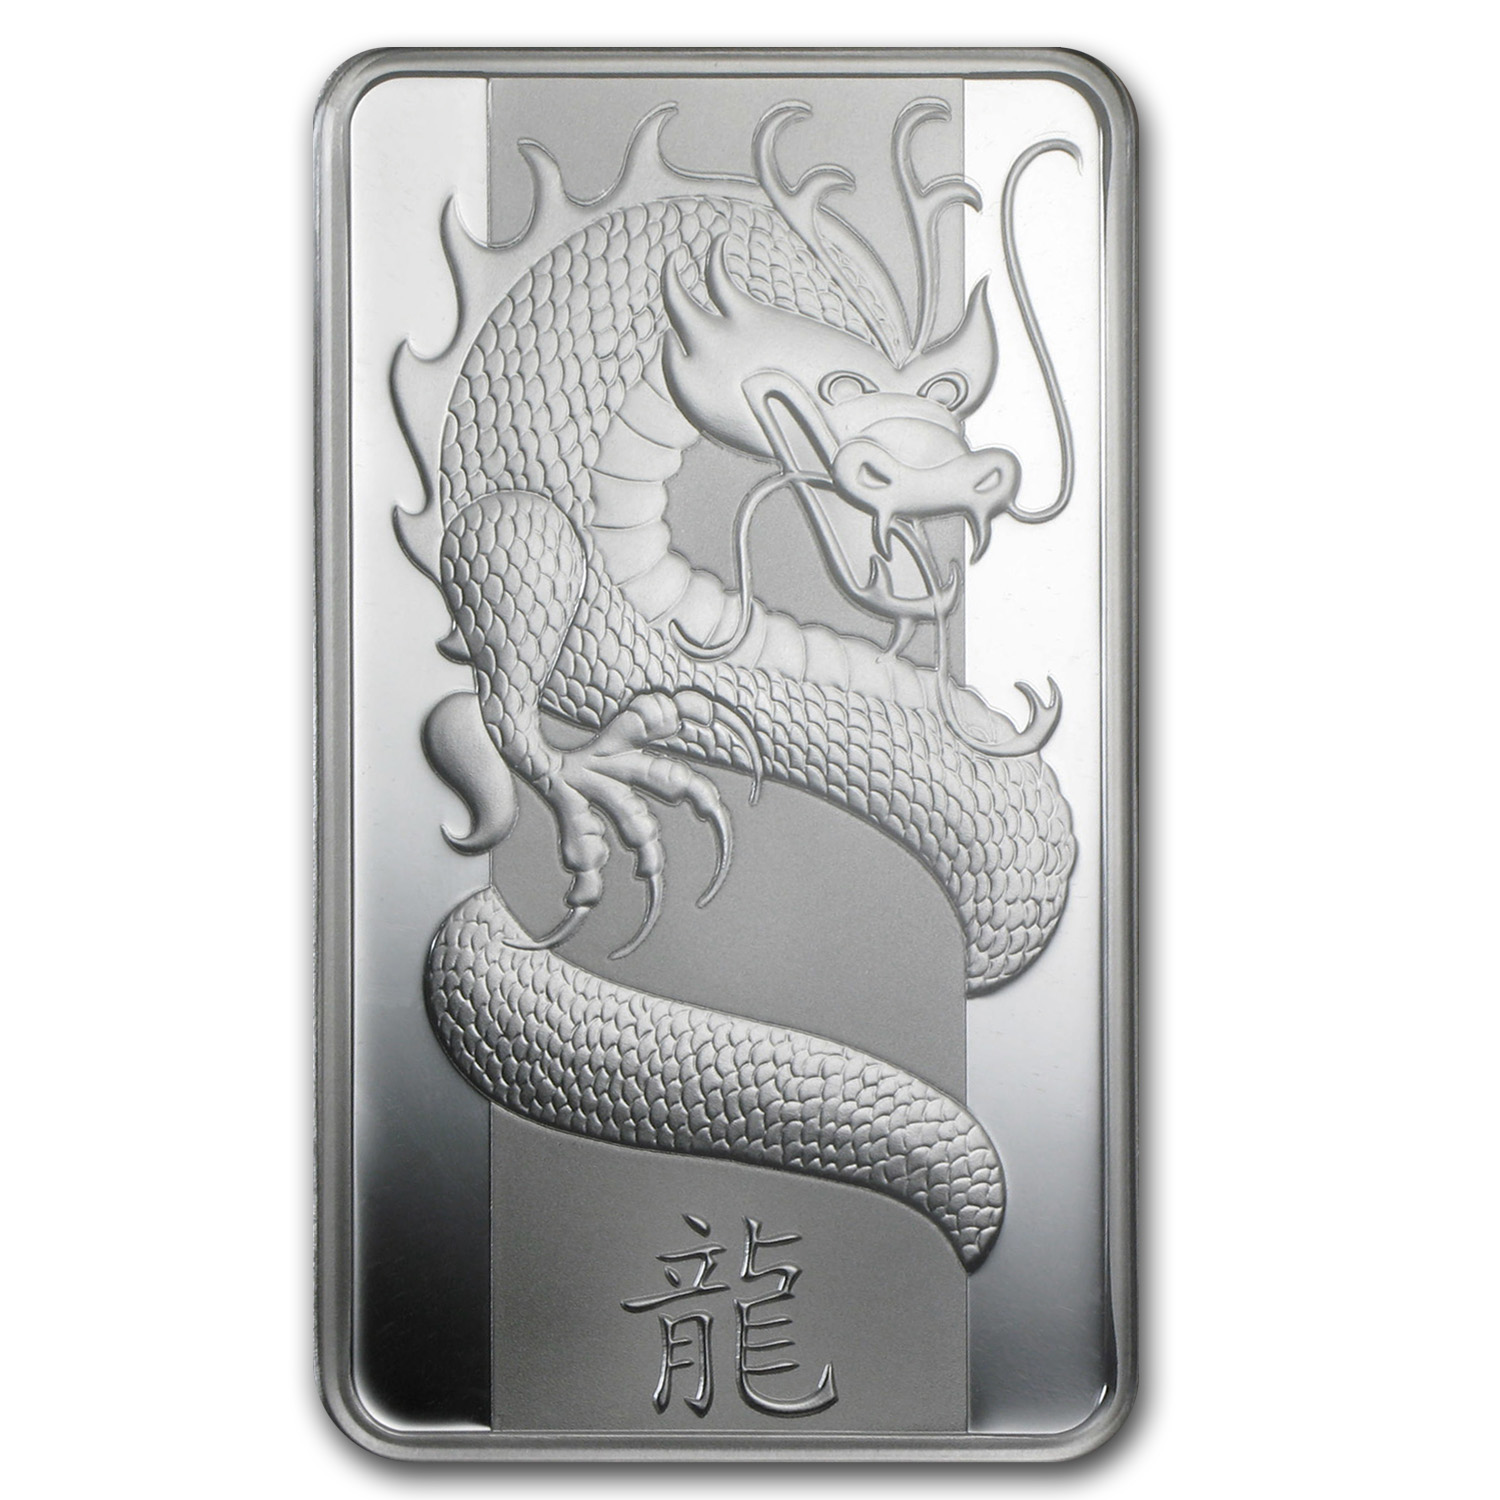 100 gram Silver Bars - Pamp Year of the Dragon (Secondary Market)